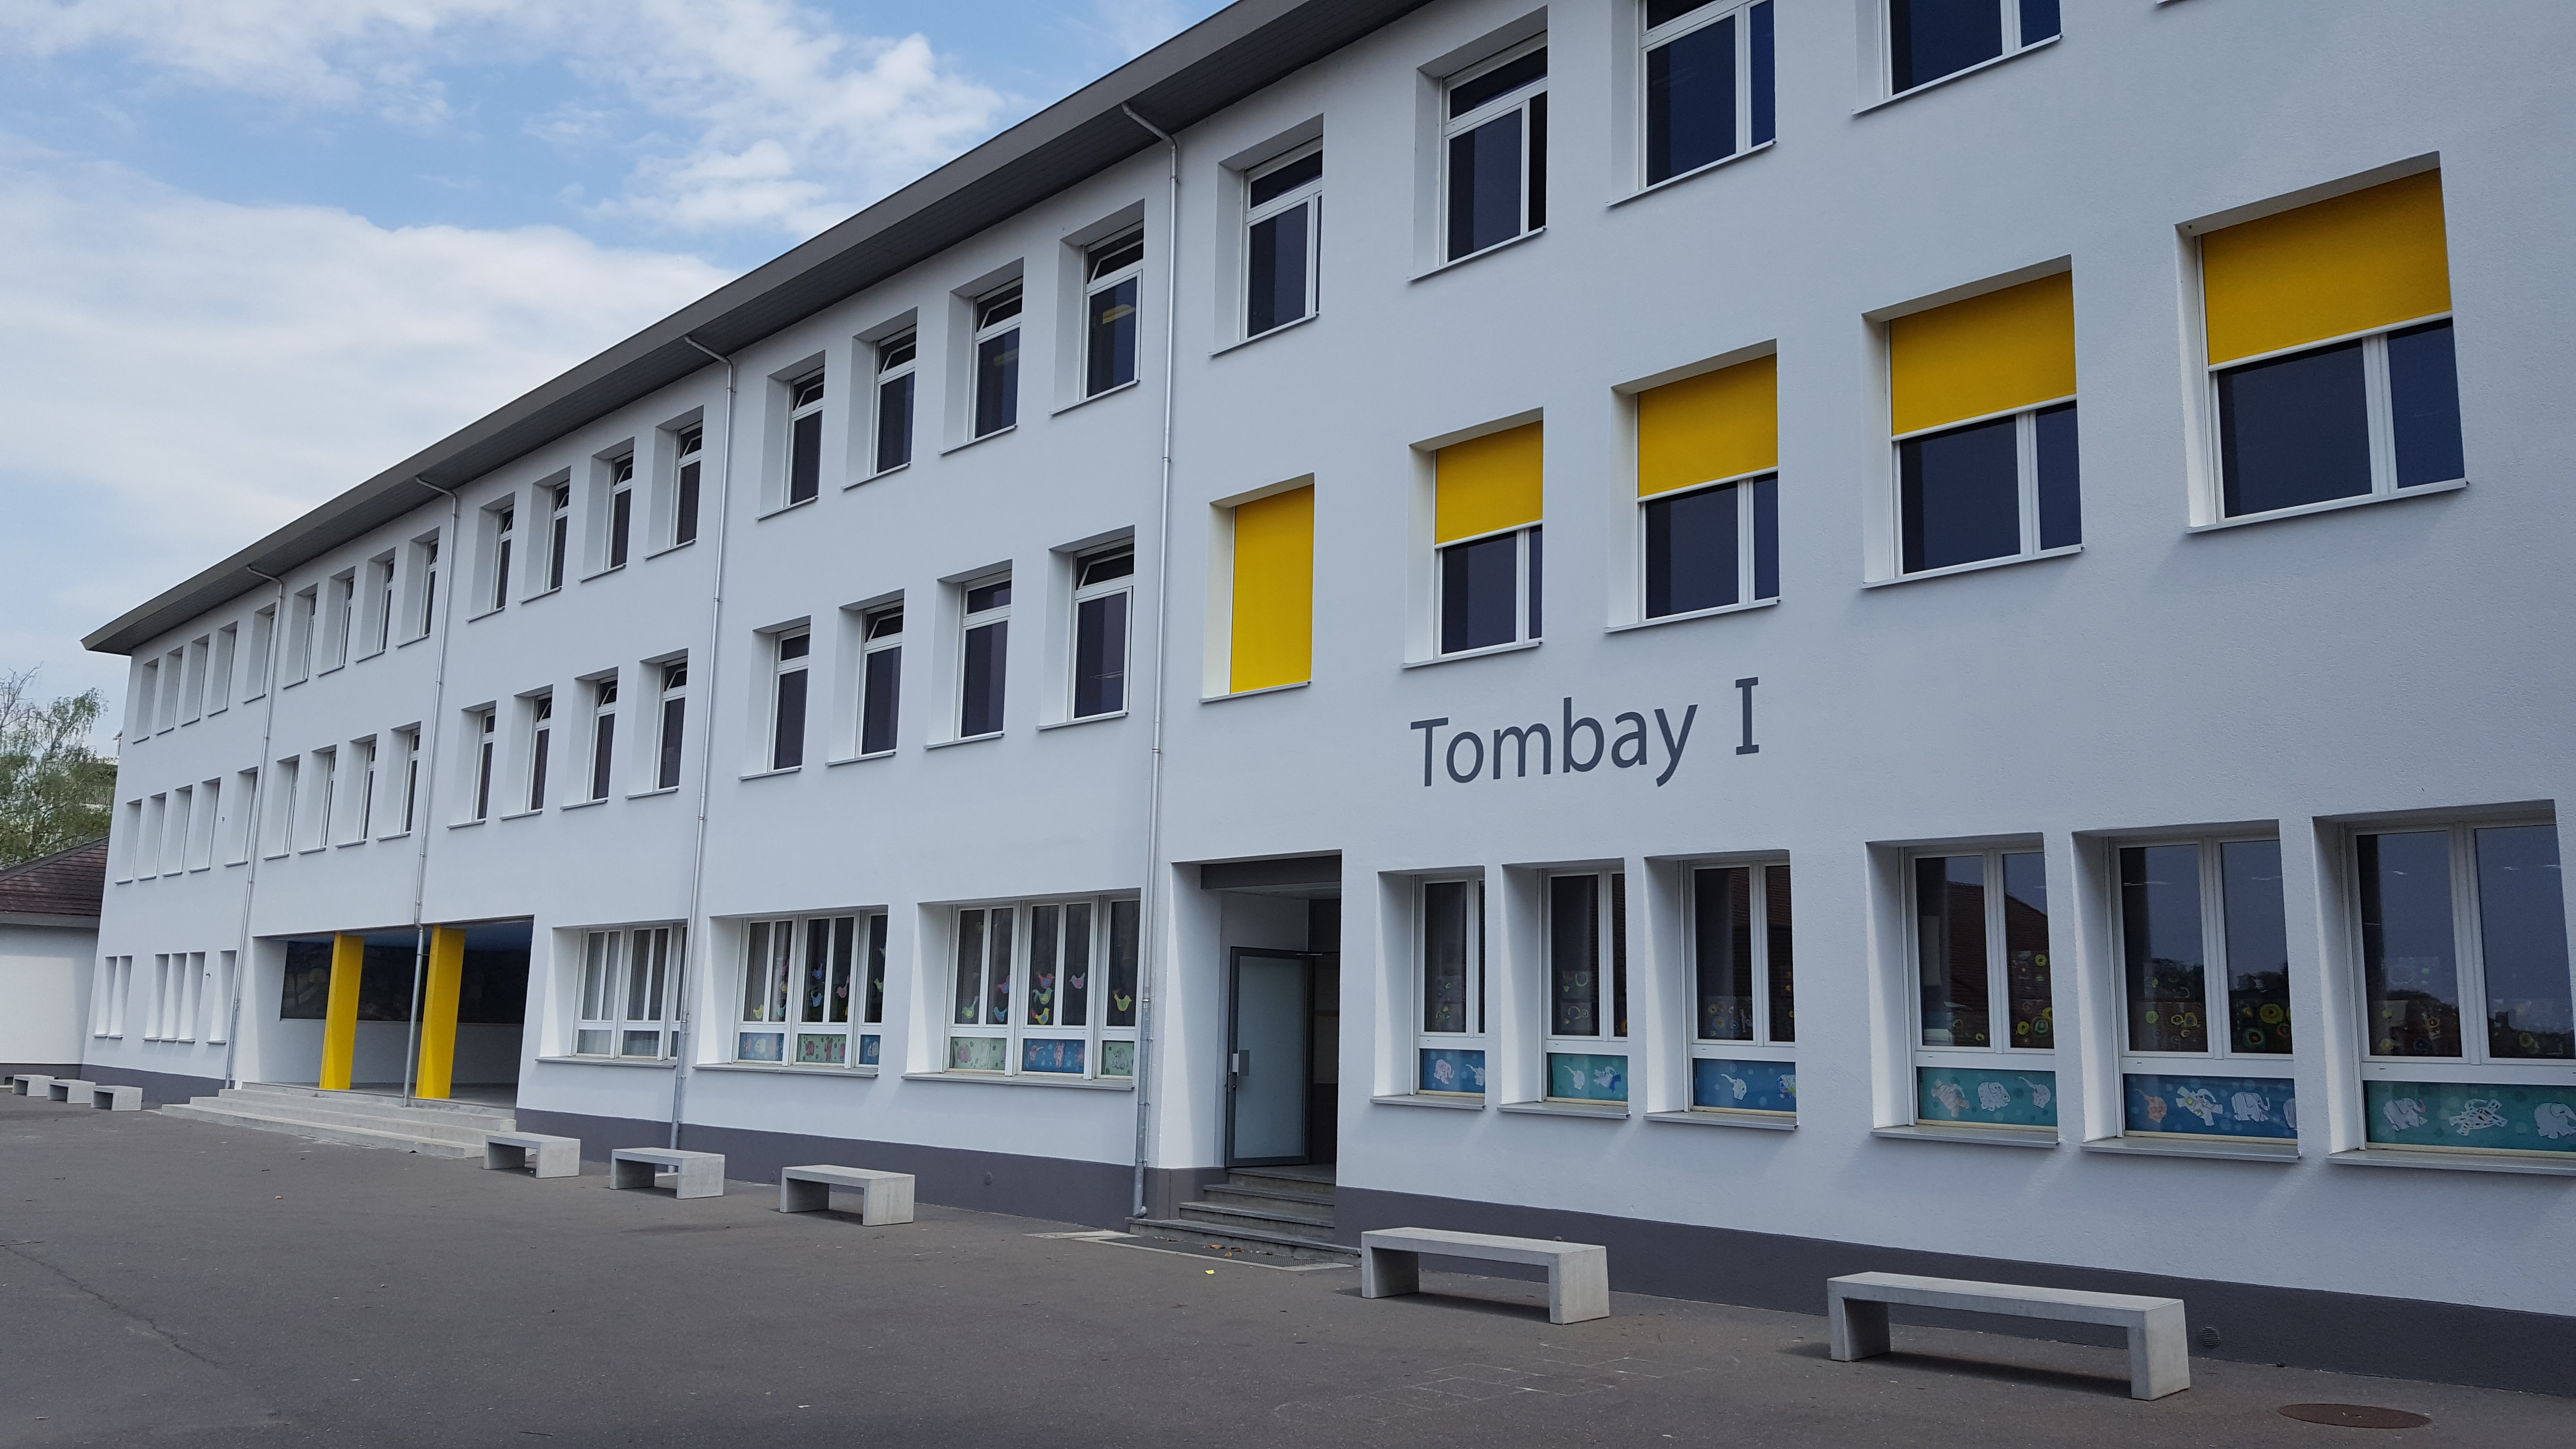 74 25.2 Collège Tombay 1